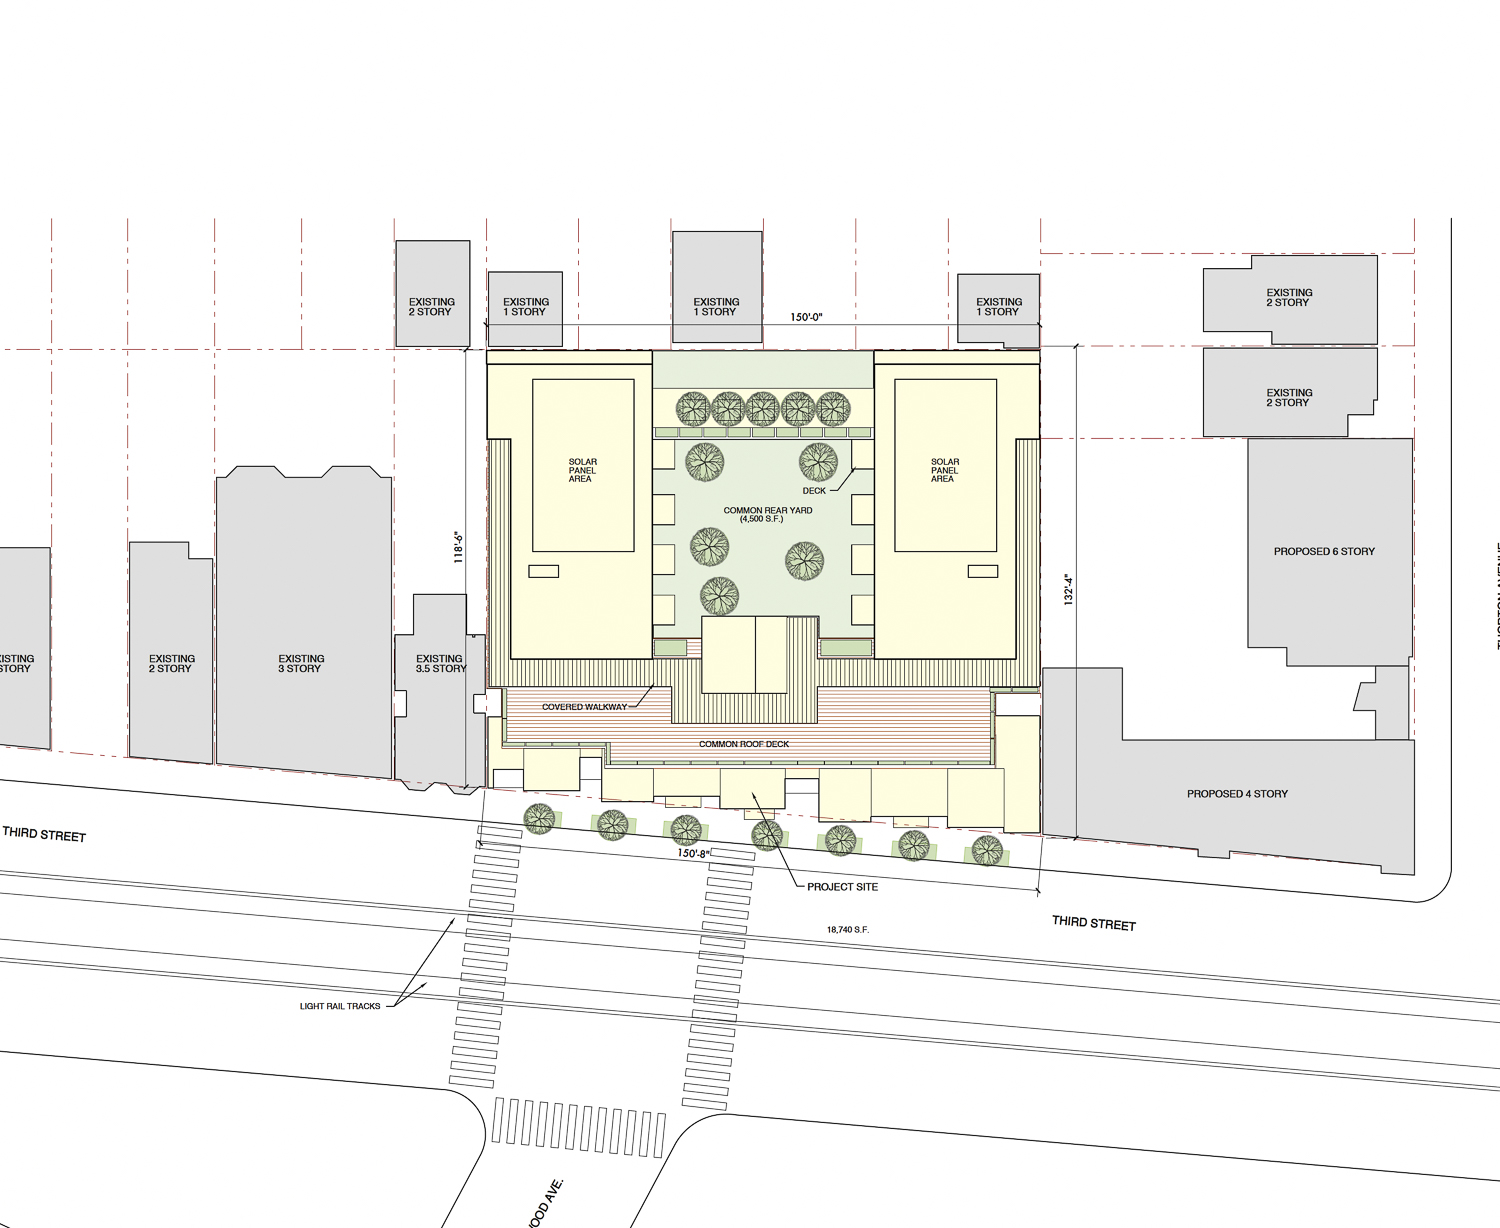 5250 3rd Street site map, rendering by Leavitt Architecture